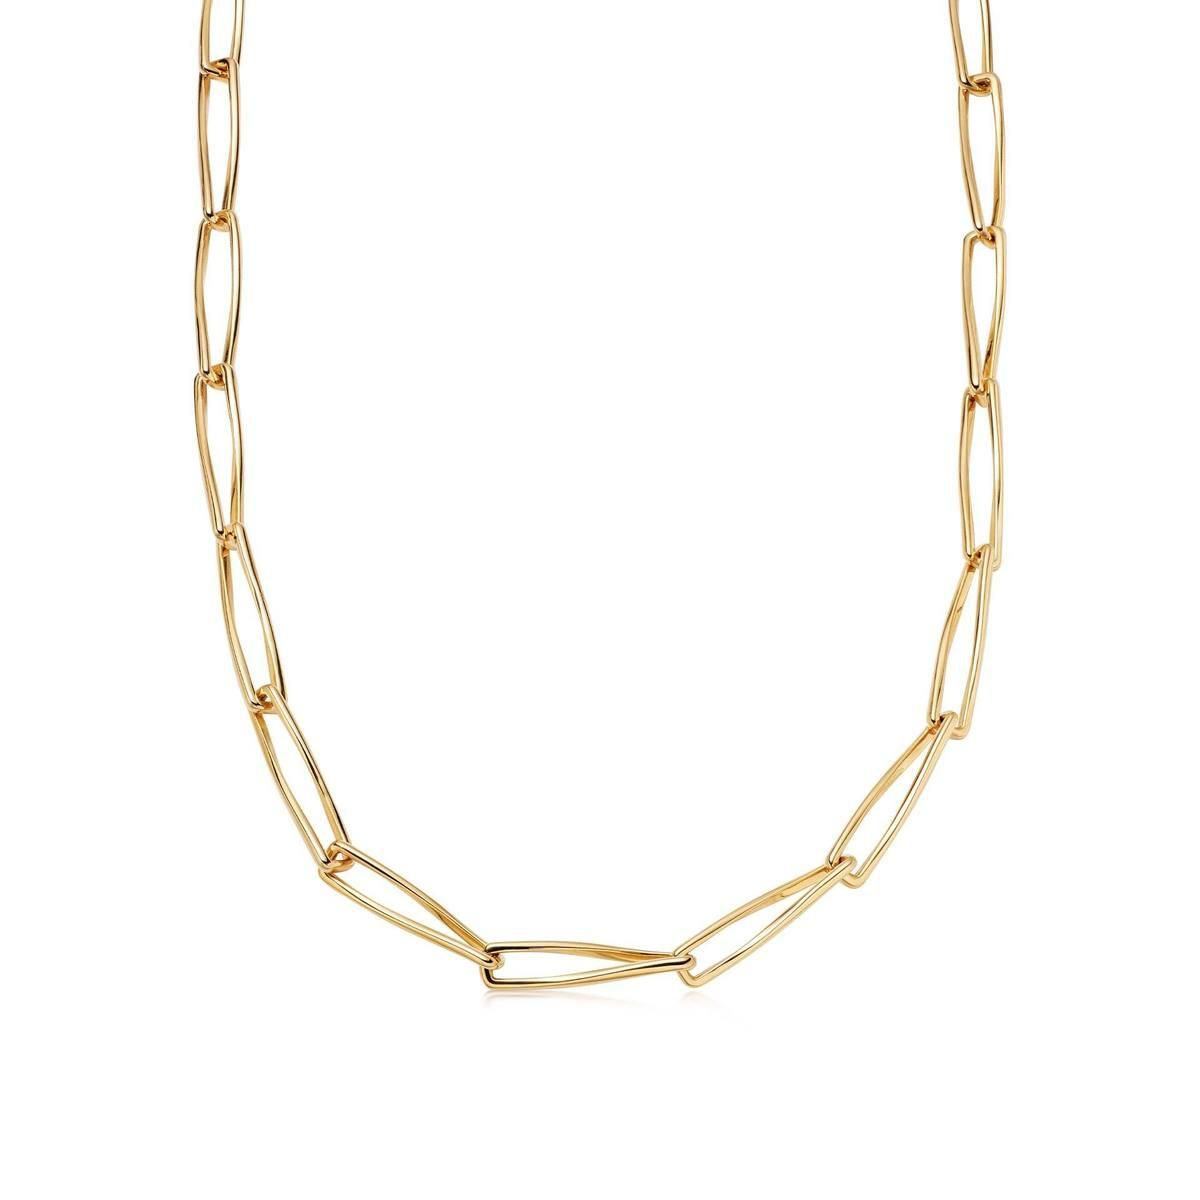 Gold Thin Pirouette Chain Necklace